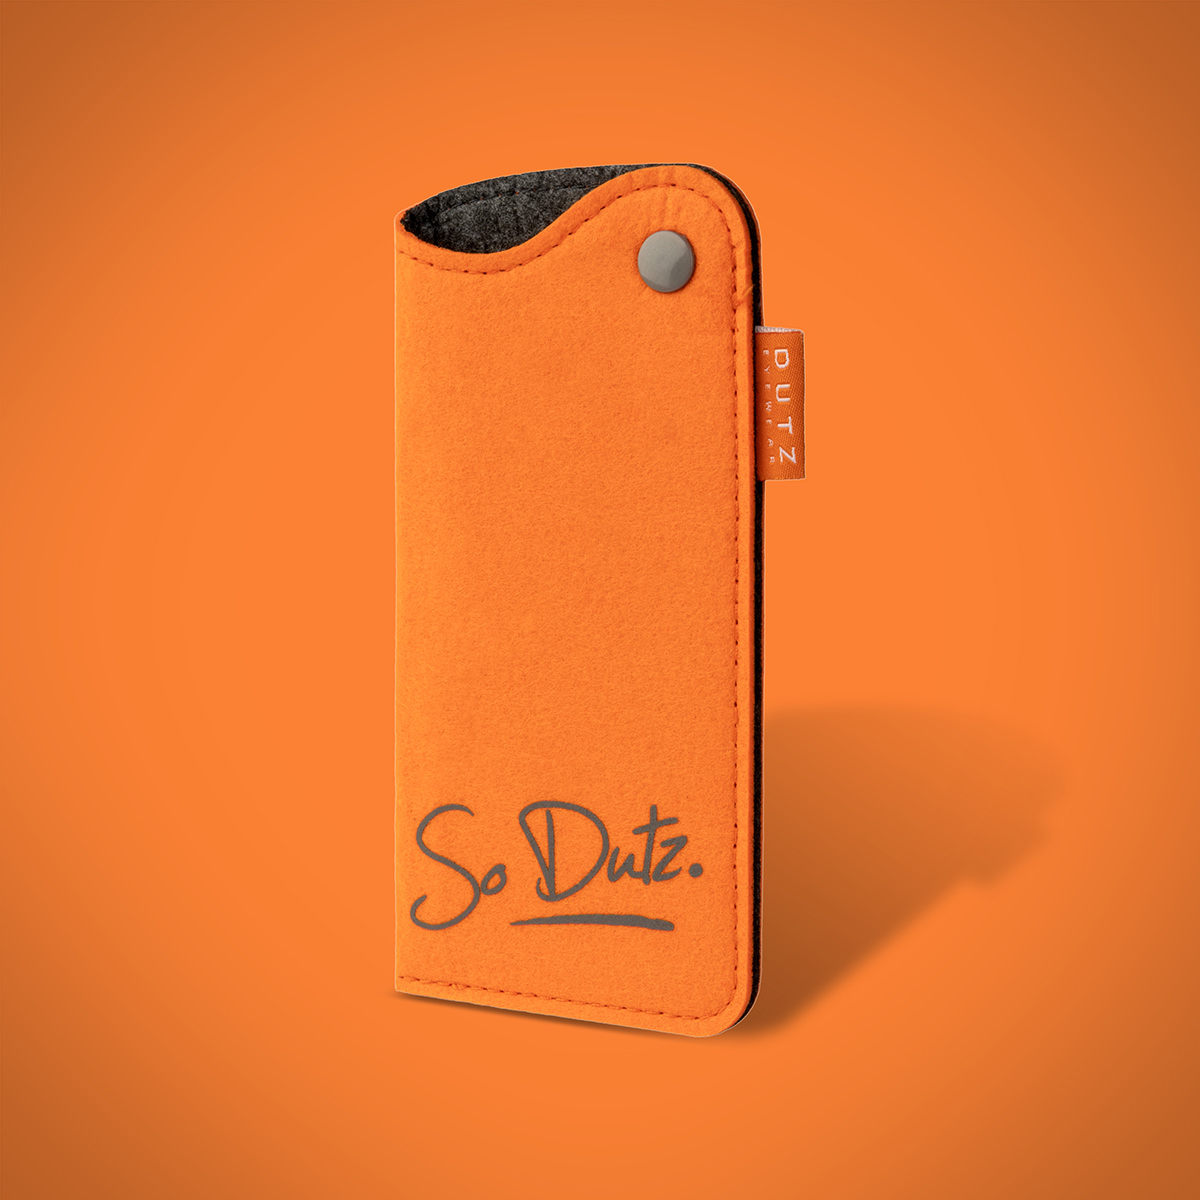 Dutz kids softcase